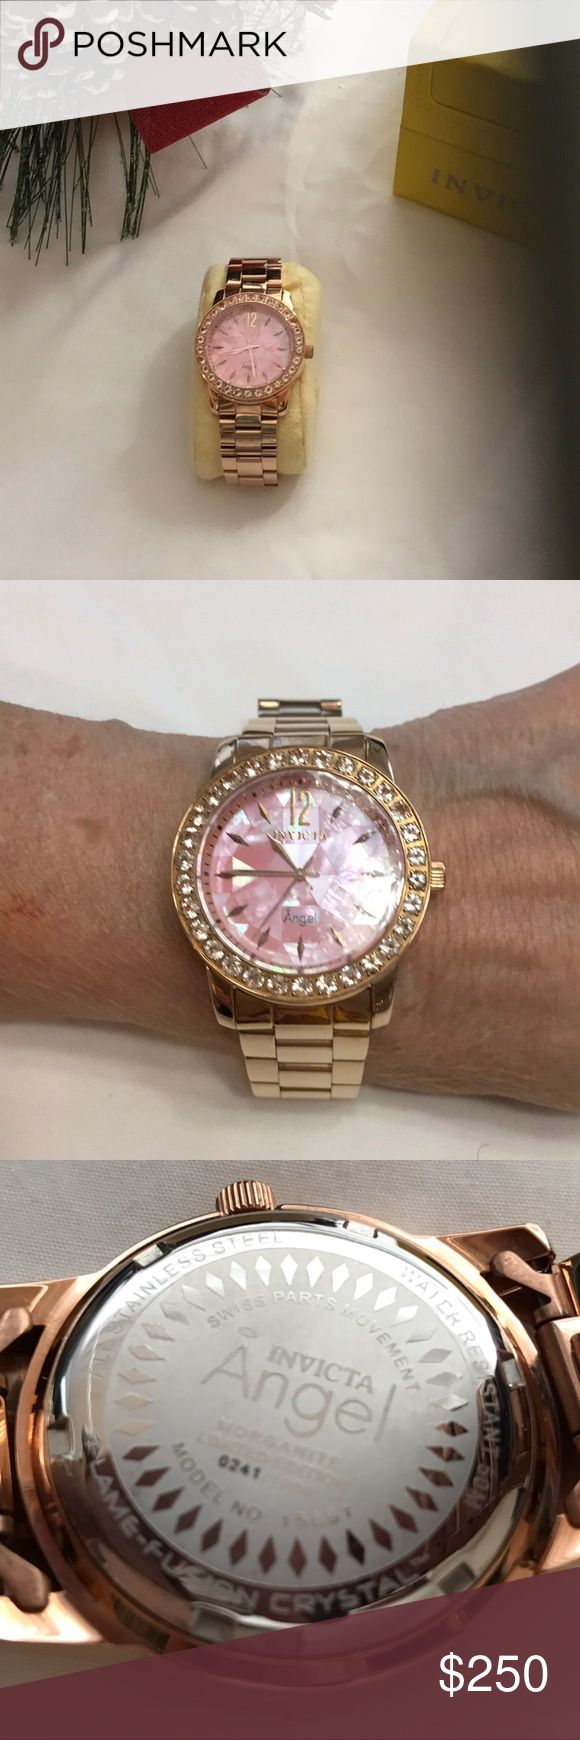 Invicta Angel Morganite Limited Edition Watch Invicta Angel Morganite Limited Edition Watch.  0241/1000. Model 15861, Rose gold. Water resistant 50m, flame fusion crystal, Swiss quartz movement. Case size 38mm. Works perfect. Absolutely beautiful.  MSRP $1995. Like new, in box. Invicta Accessories Watches